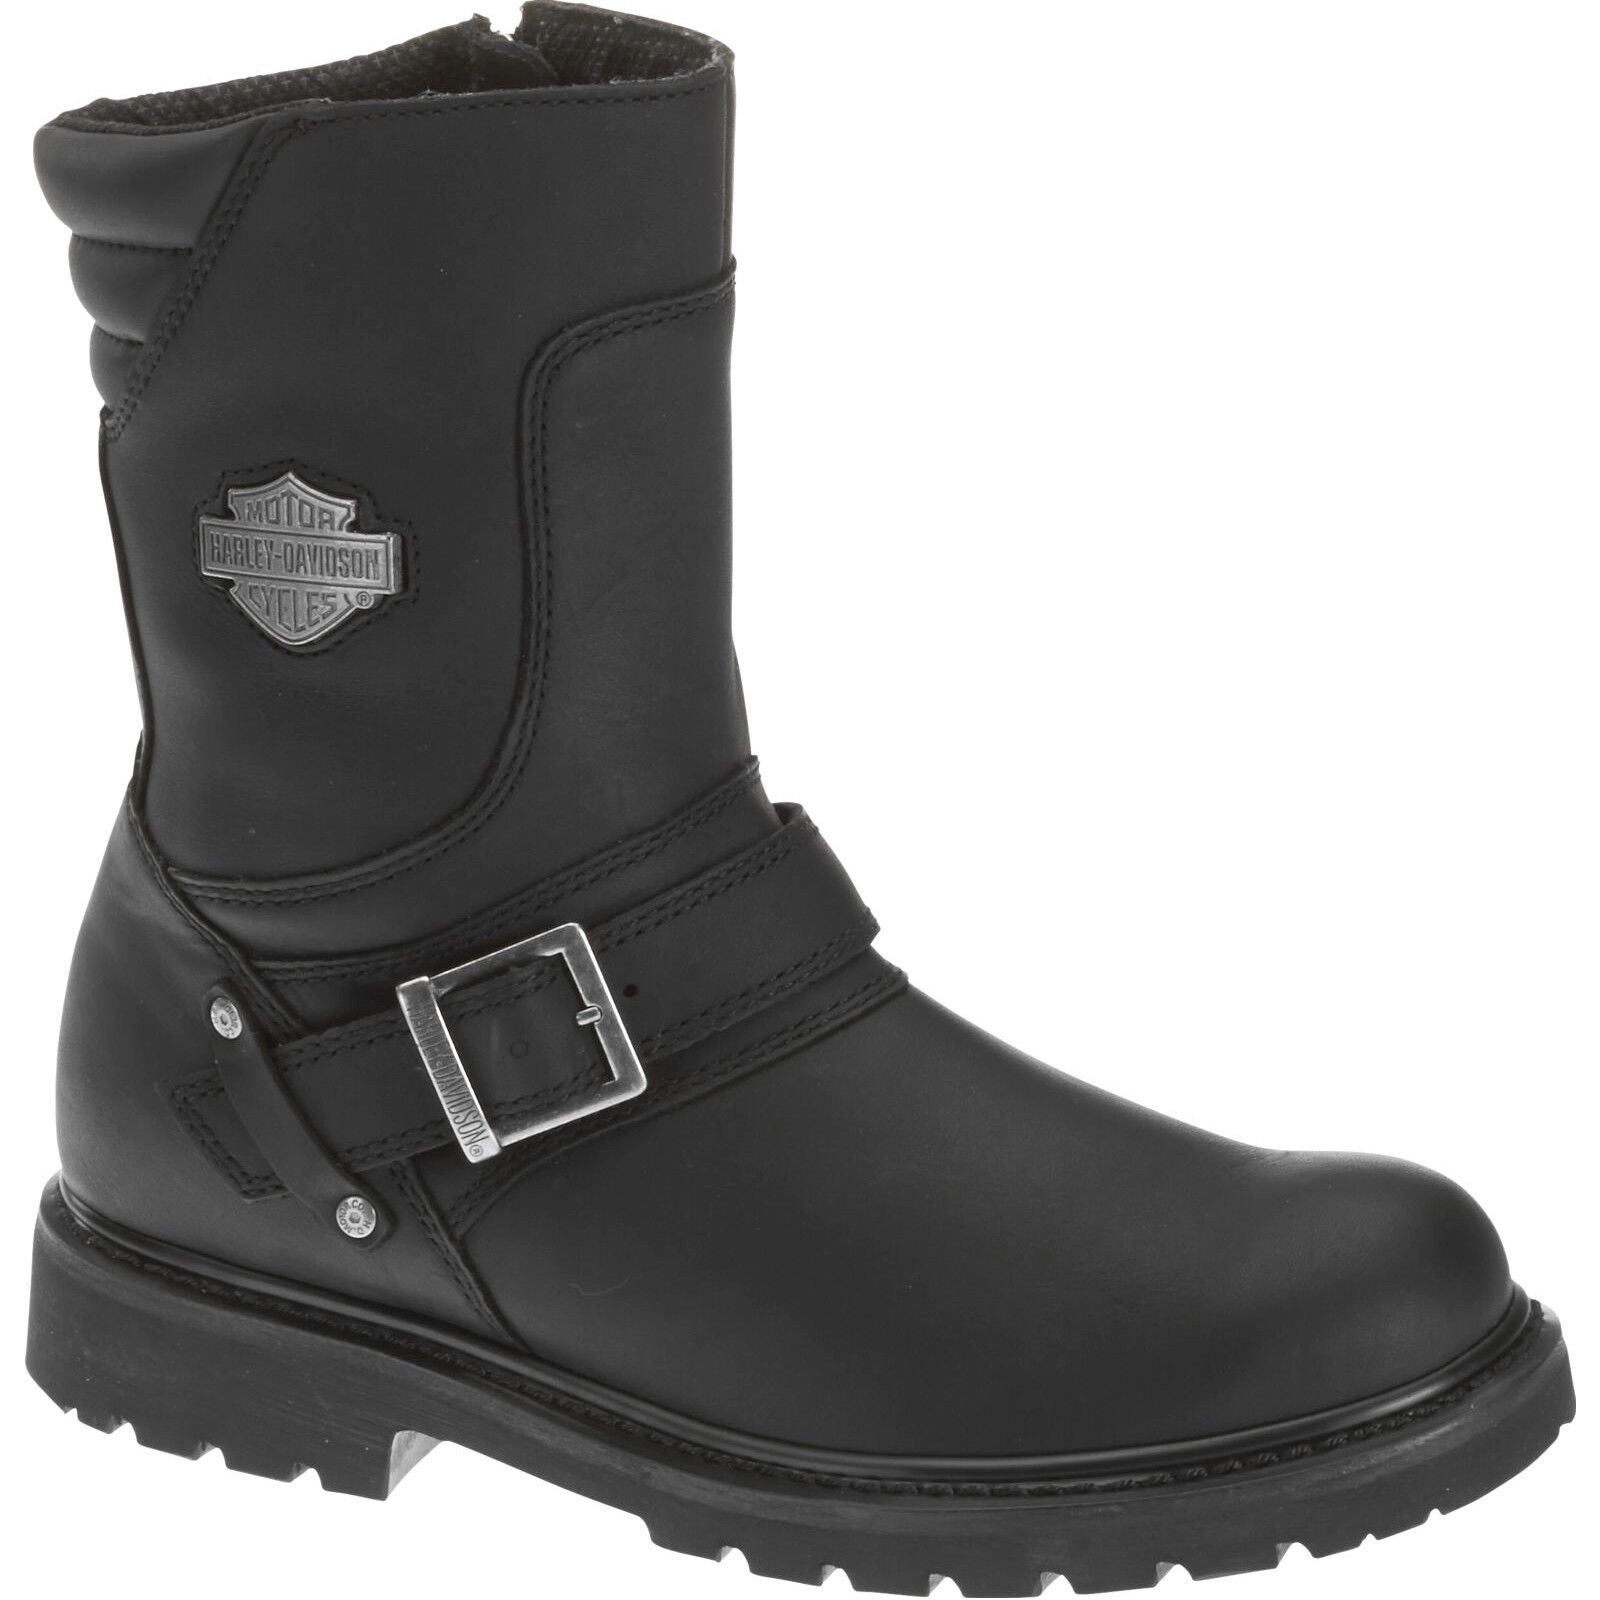 Harley Davidson Booker Leather Motorcycle Riding Zip-Up Front-Strap Mens Boots